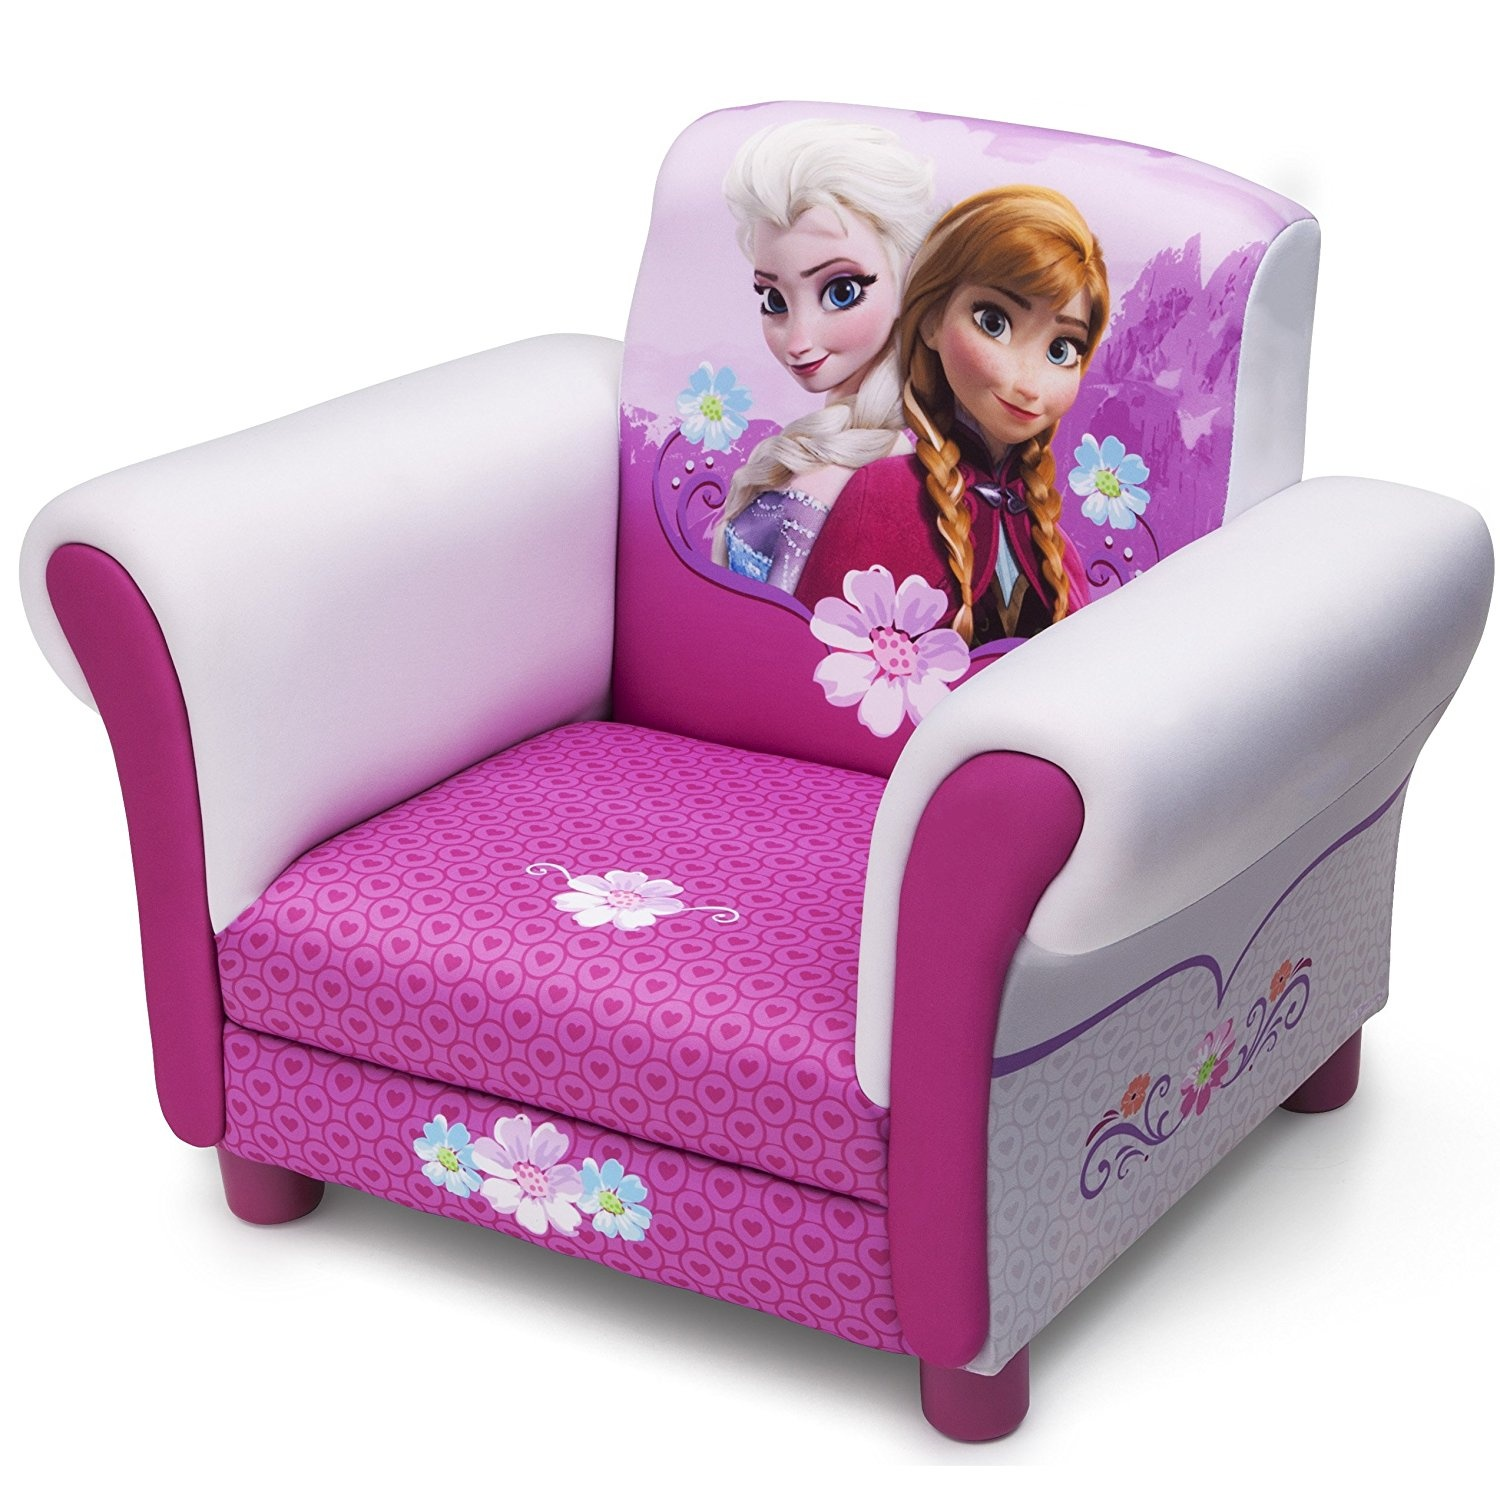 Upholstered Children's Chairs Disney Cars Children S Upholstered Chair By Delta Children